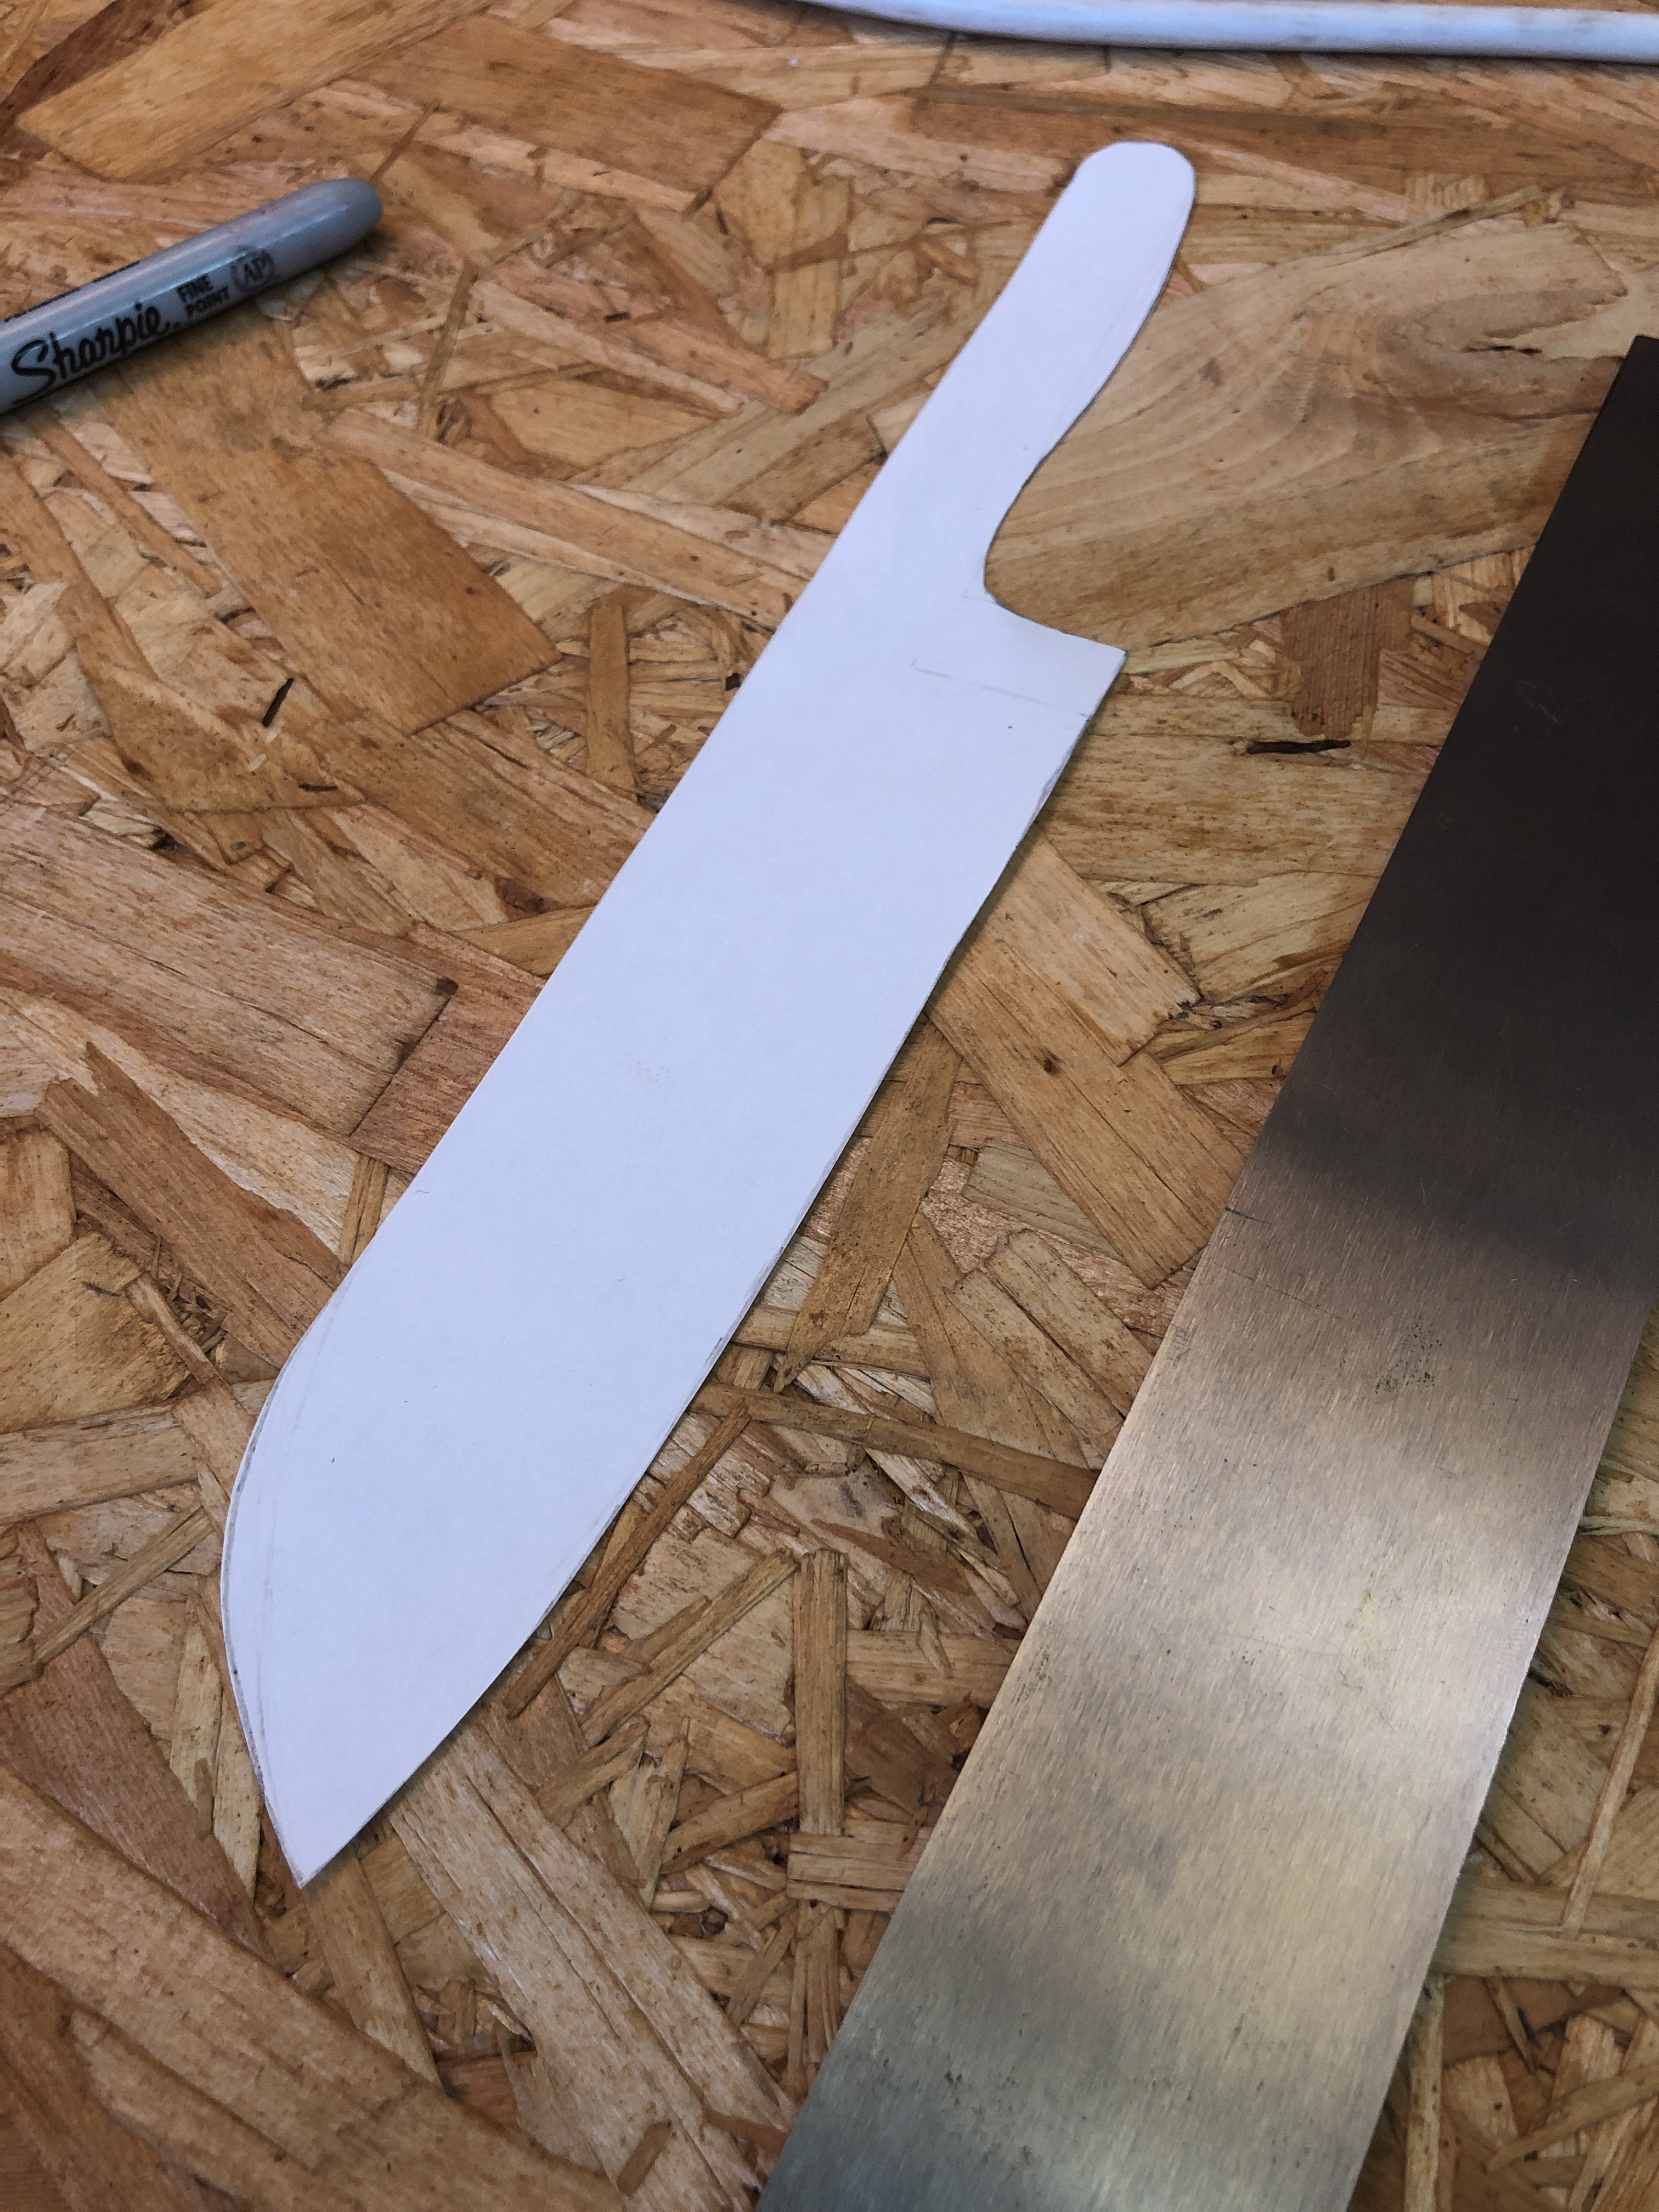 paper template of the knife shape